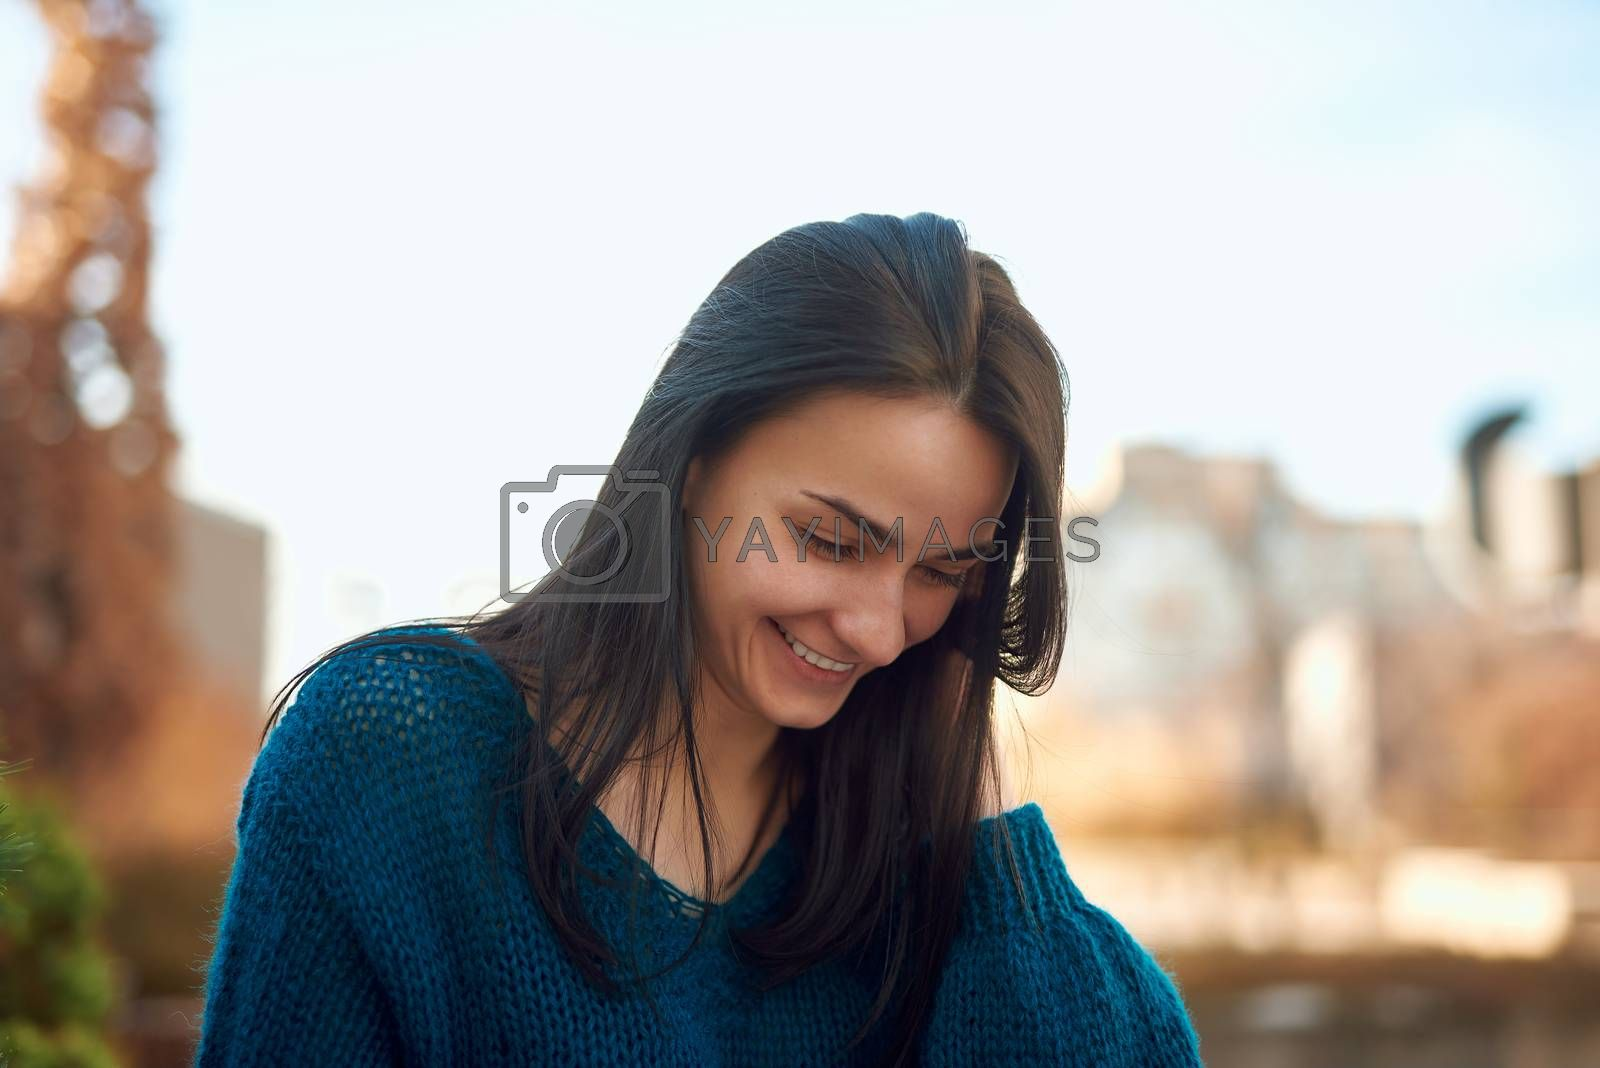 Young beautiful woman looking down with happy smile while tidying up her hair with hand on defocused background of city street